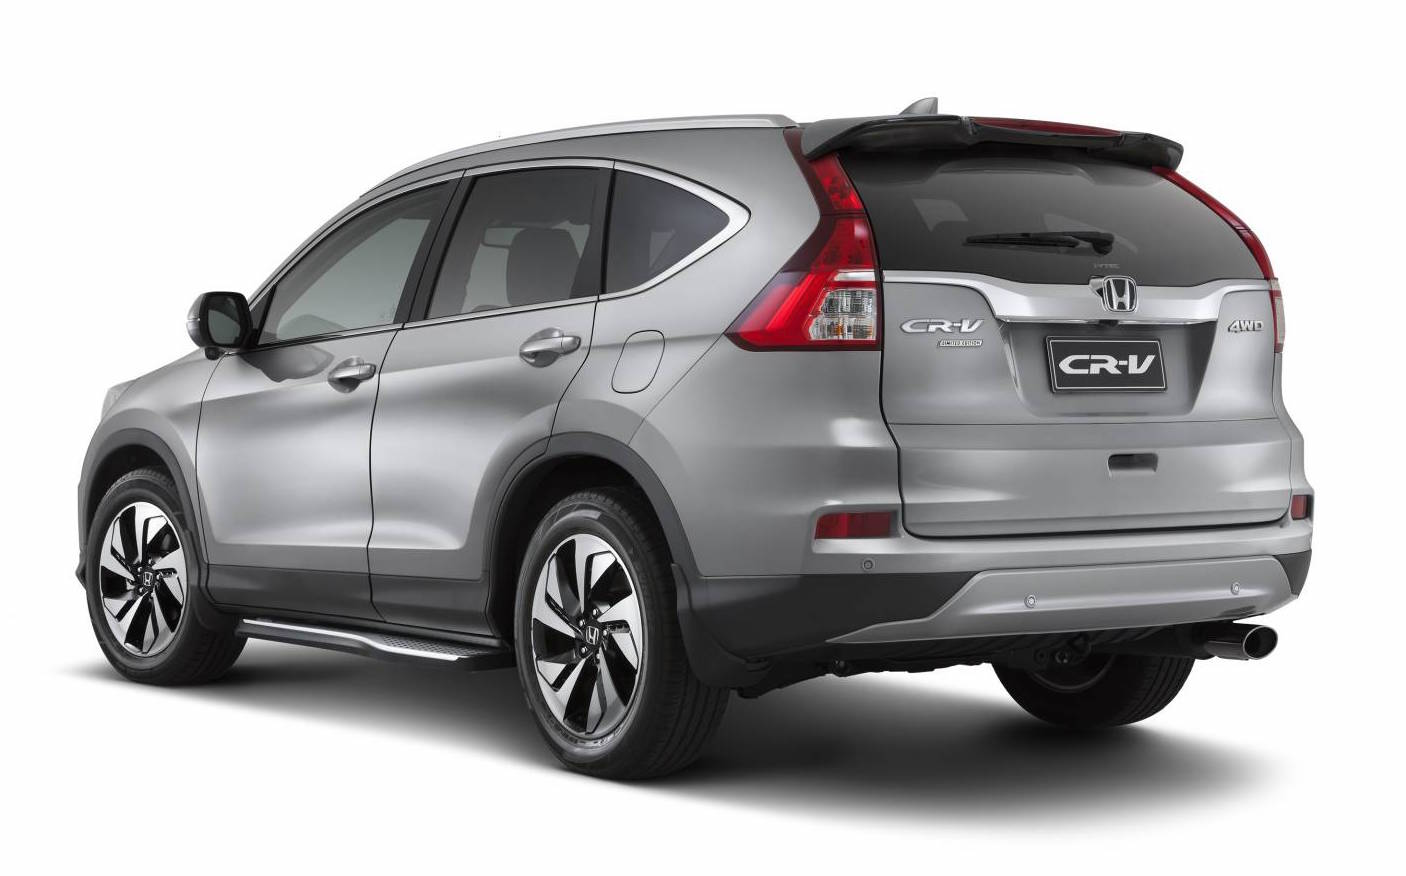 Honda Crv For Sale >> 2016 Honda CR-V Limited Edition on sale in Australia from $32,990 | PerformanceDrive